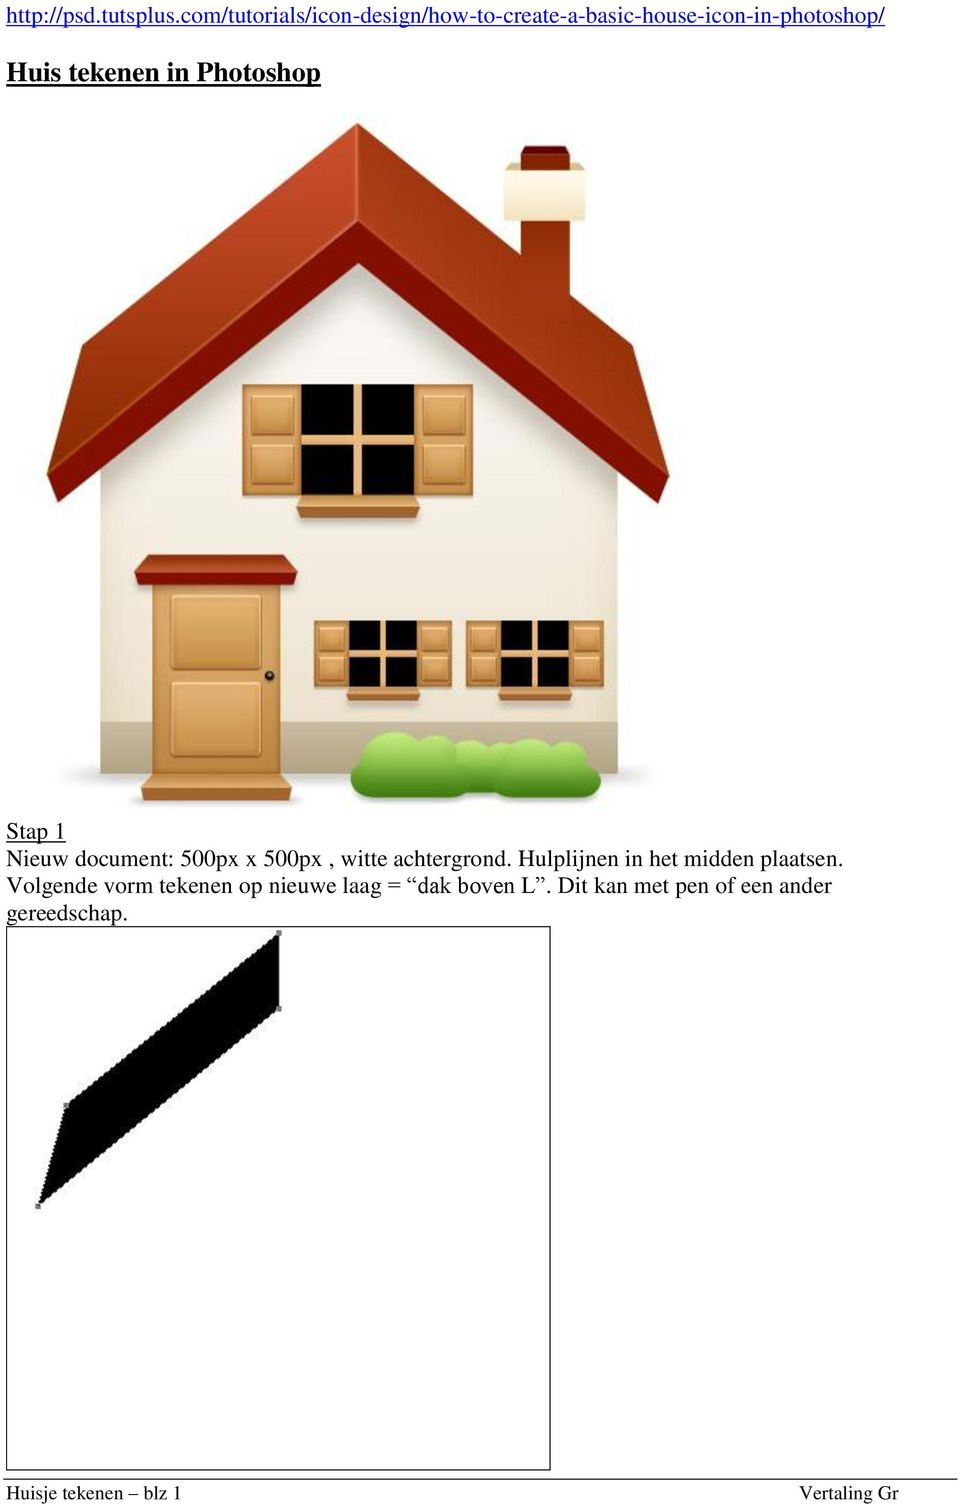 Huis Tekenen Huis Tekenen In Photoshop Pdf